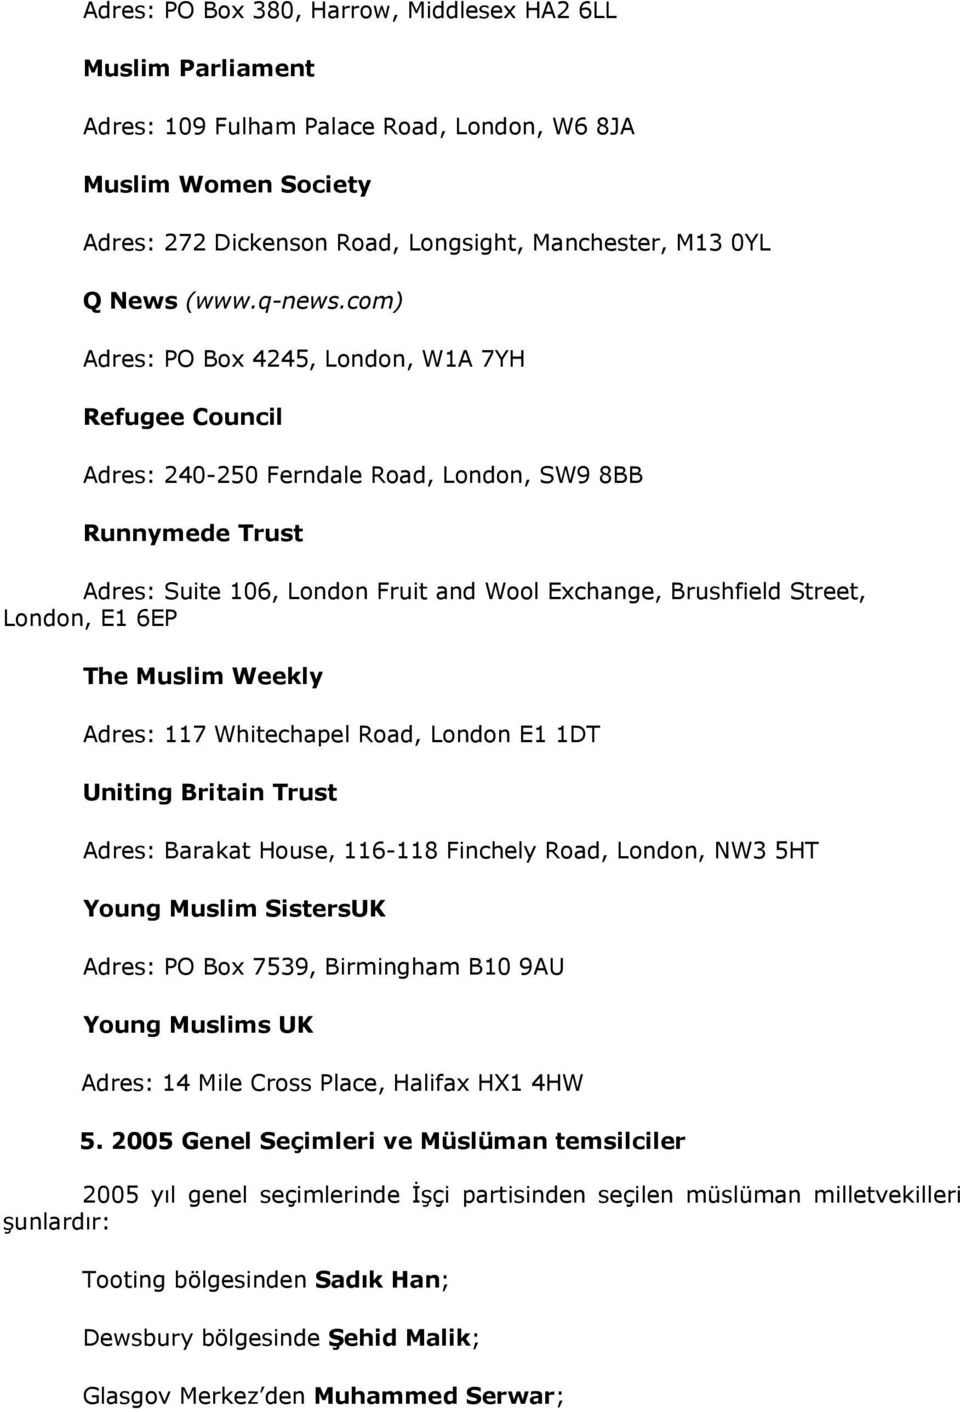 com) Adres: PO Box 4245, London, W1A 7YH Refugee Council Adres: 240-250 Ferndale Road, London, SW9 8BB Runnymede Trust Adres: Suite 106, London Fruit and Wool Exchange, Brushfield Street, London, E1